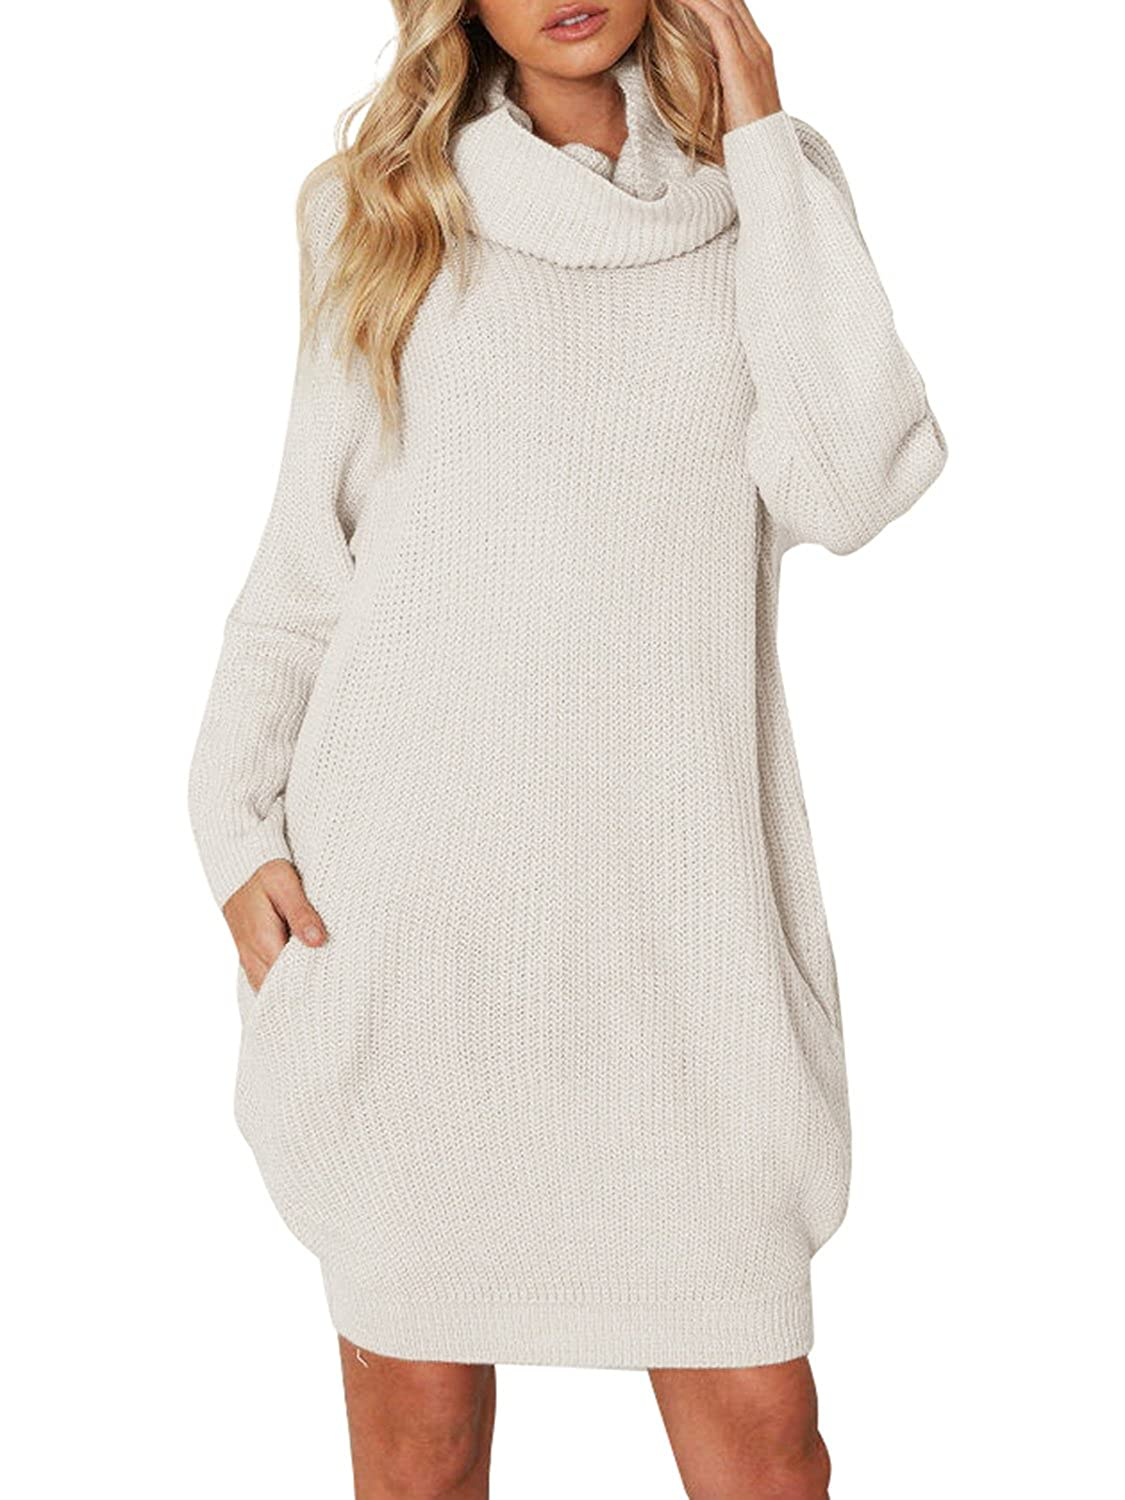 Simplee Women's Winter Warm Loose Turtleneck Oversized Pullover ...